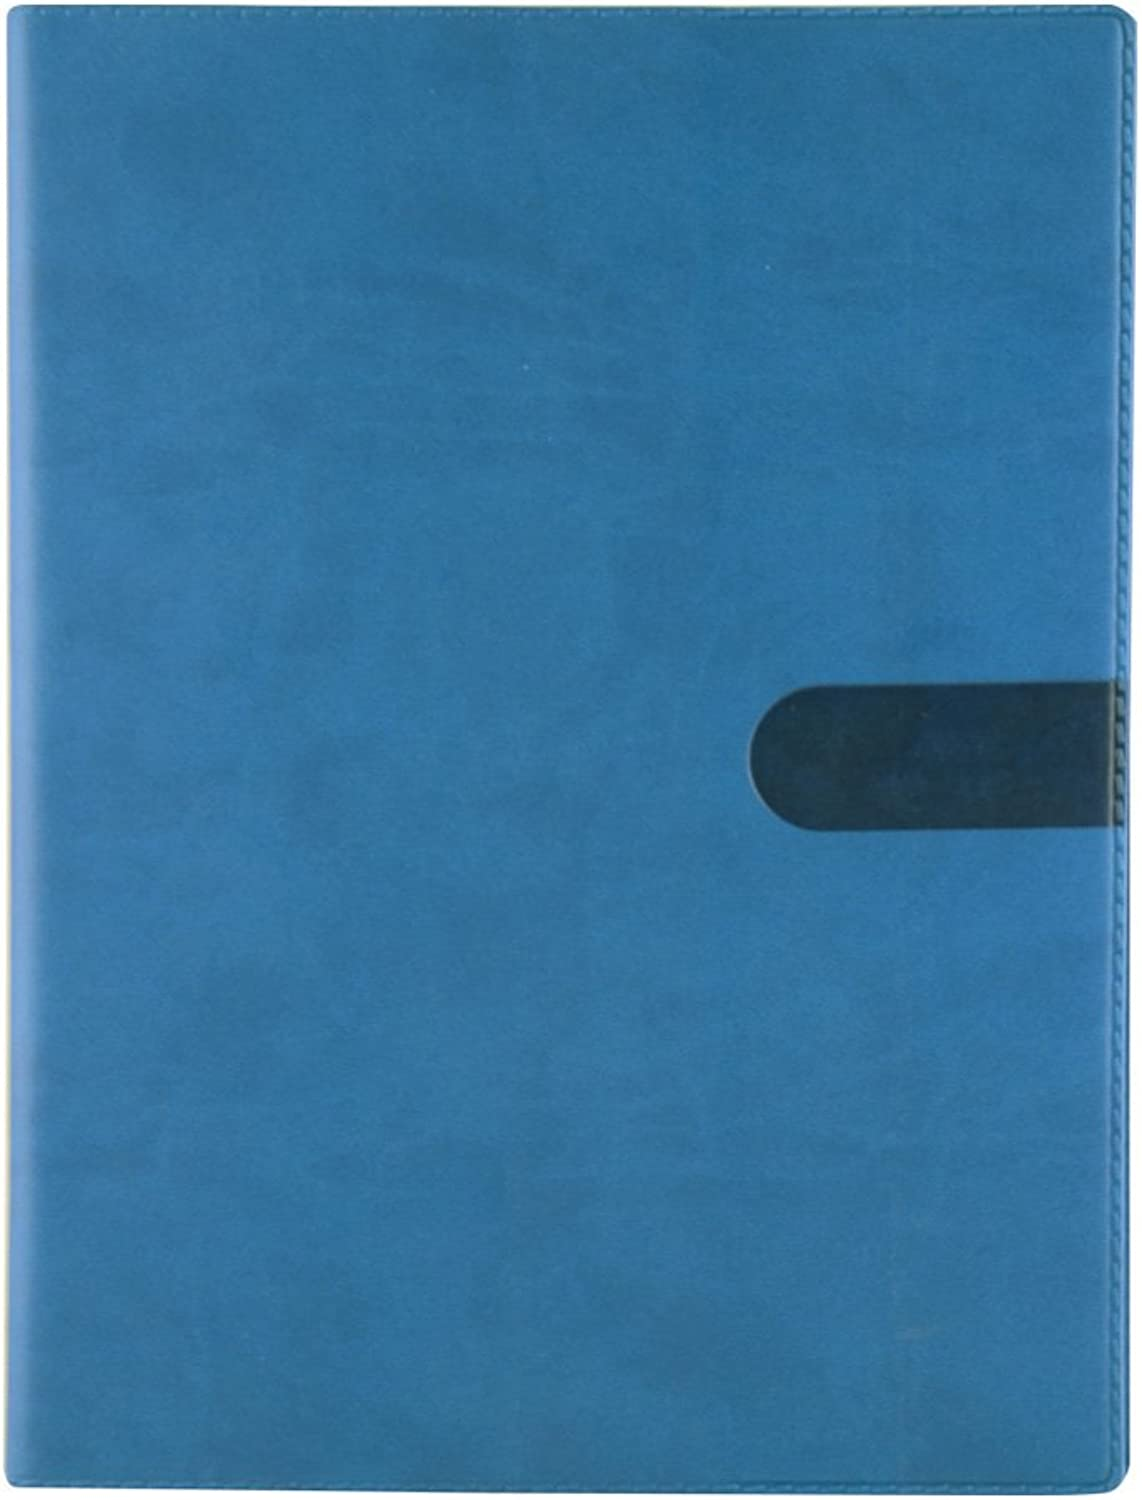 Quo Vadis Principal    29 Academic Planner, Texas Cover, Blau Faux-Suede, 12 Months, August 2018 to July 2019, Weekly, 7 by 9.38 inches B07CRK632J  | Vollständige Spezifikation  0965b6